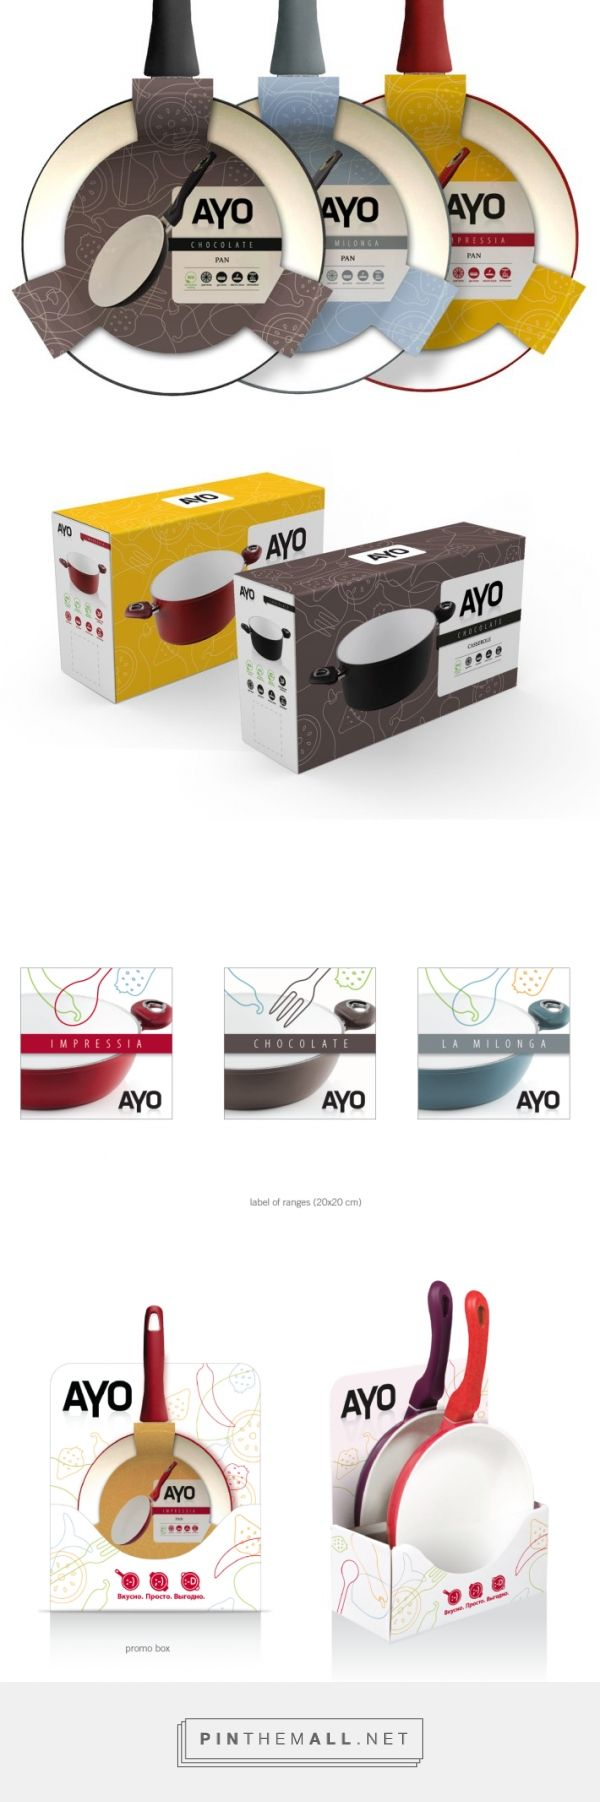 Ayo Cookware   raffaele mirarchi. Nice collection of pots and pans packaging PD - created via https://raffaelemirarchi.wordpress.com/2013/09/15/ayo-cookware/